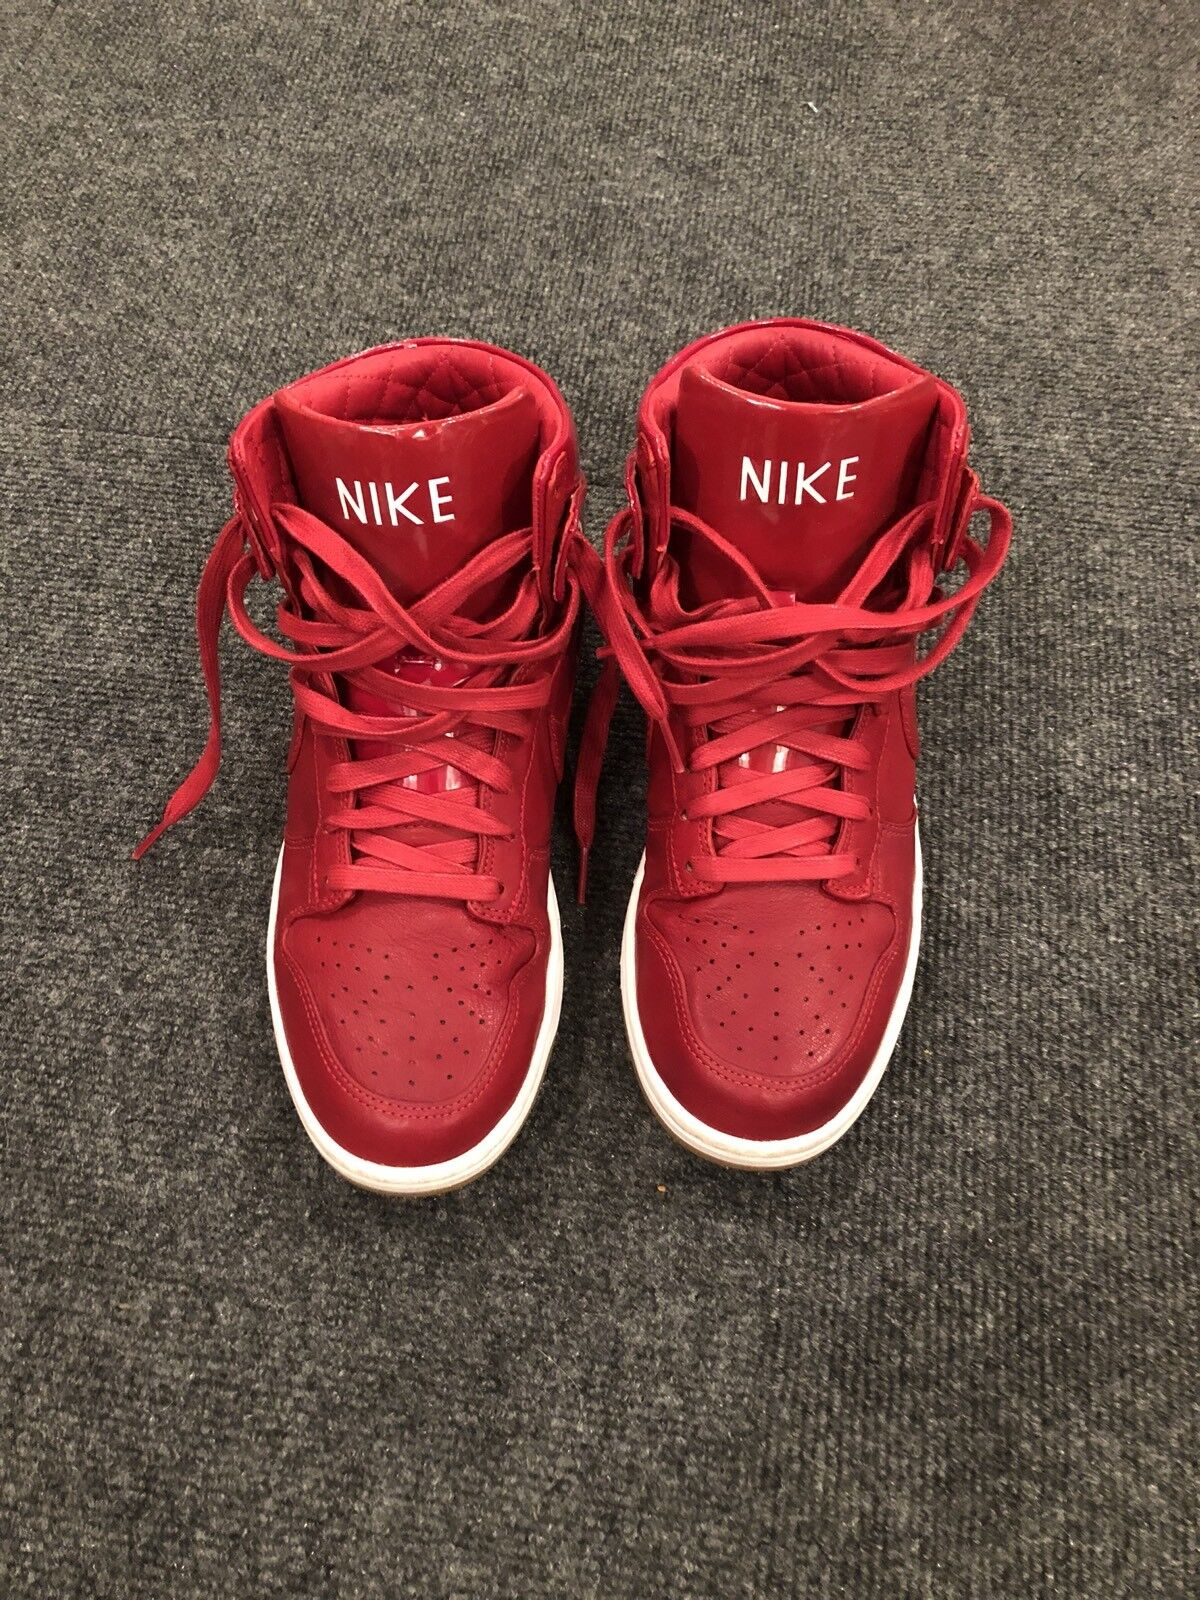 Nike Dunk Lux SP Red Mens Comfortable Special limited time